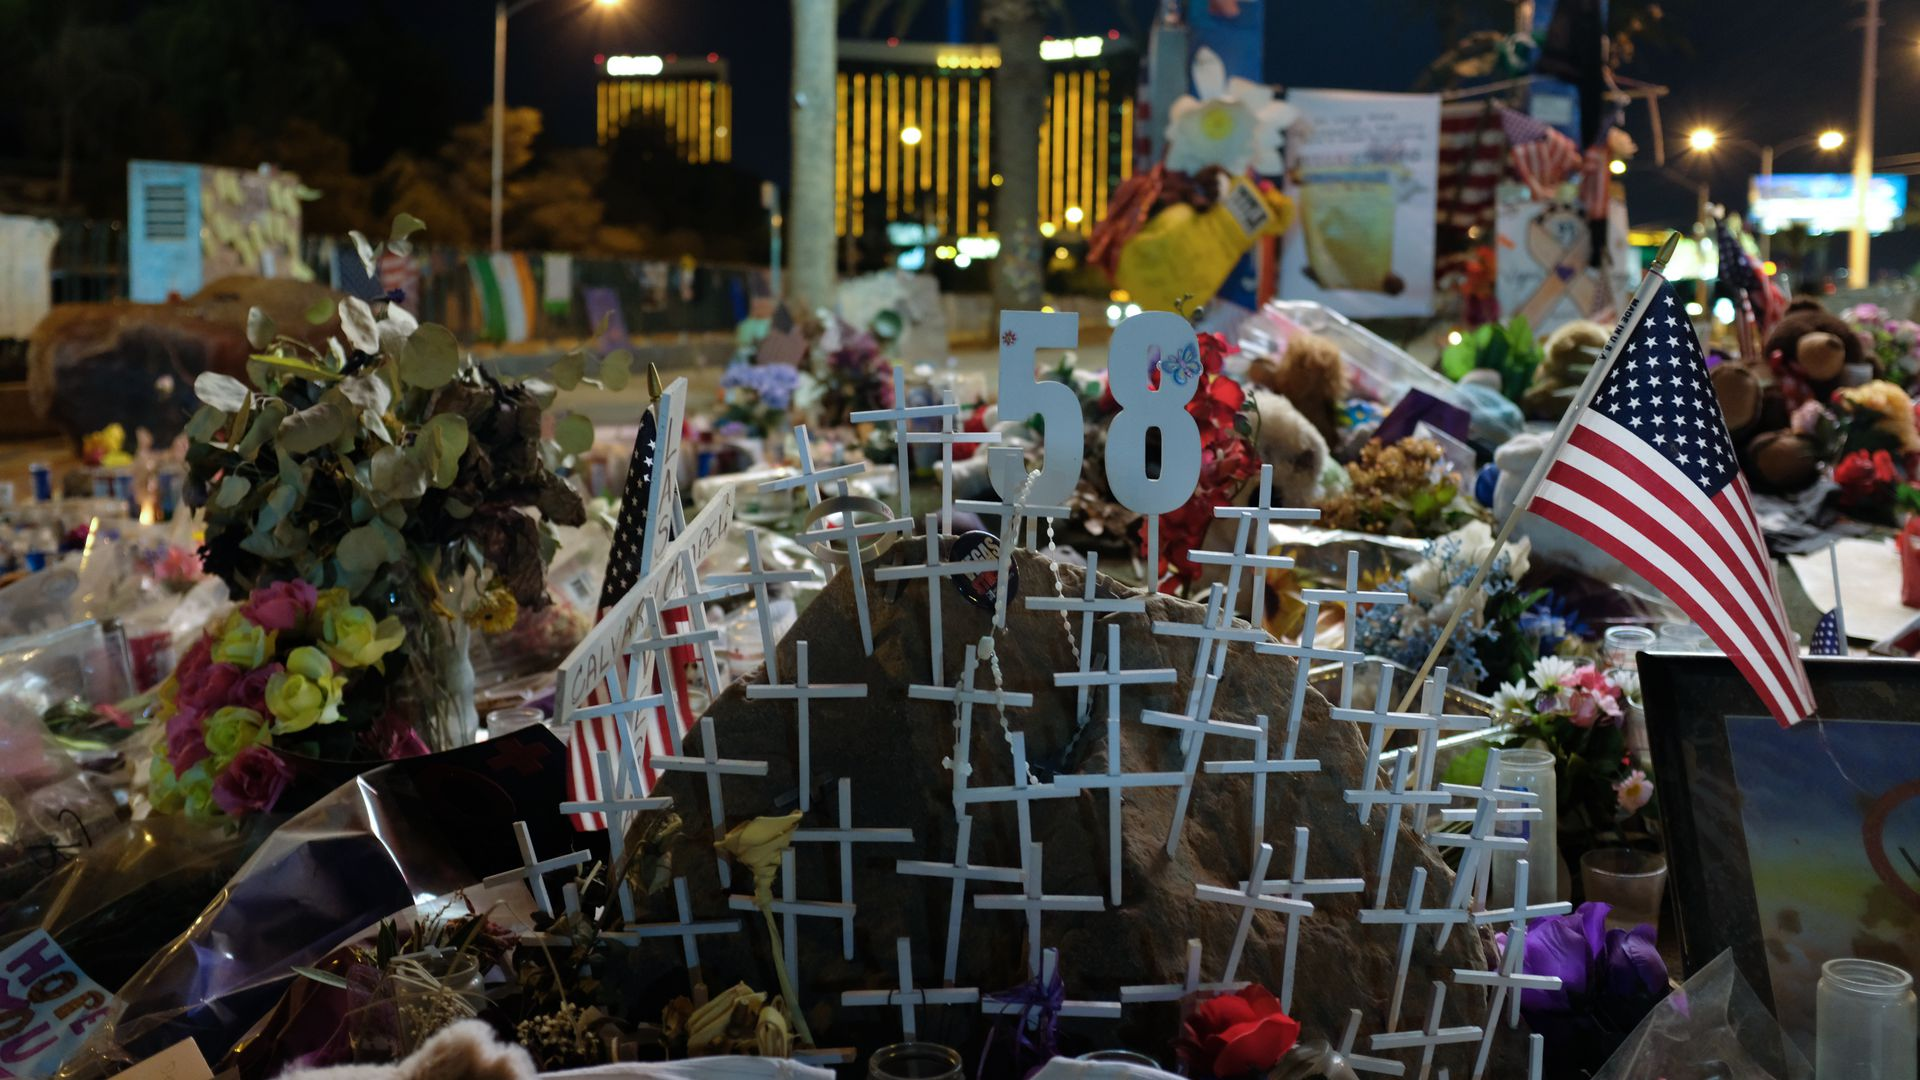 A memorial for the victims after the mass shooting in Las Vegas, Nevada, that took 58 lives, October 28, 2017.